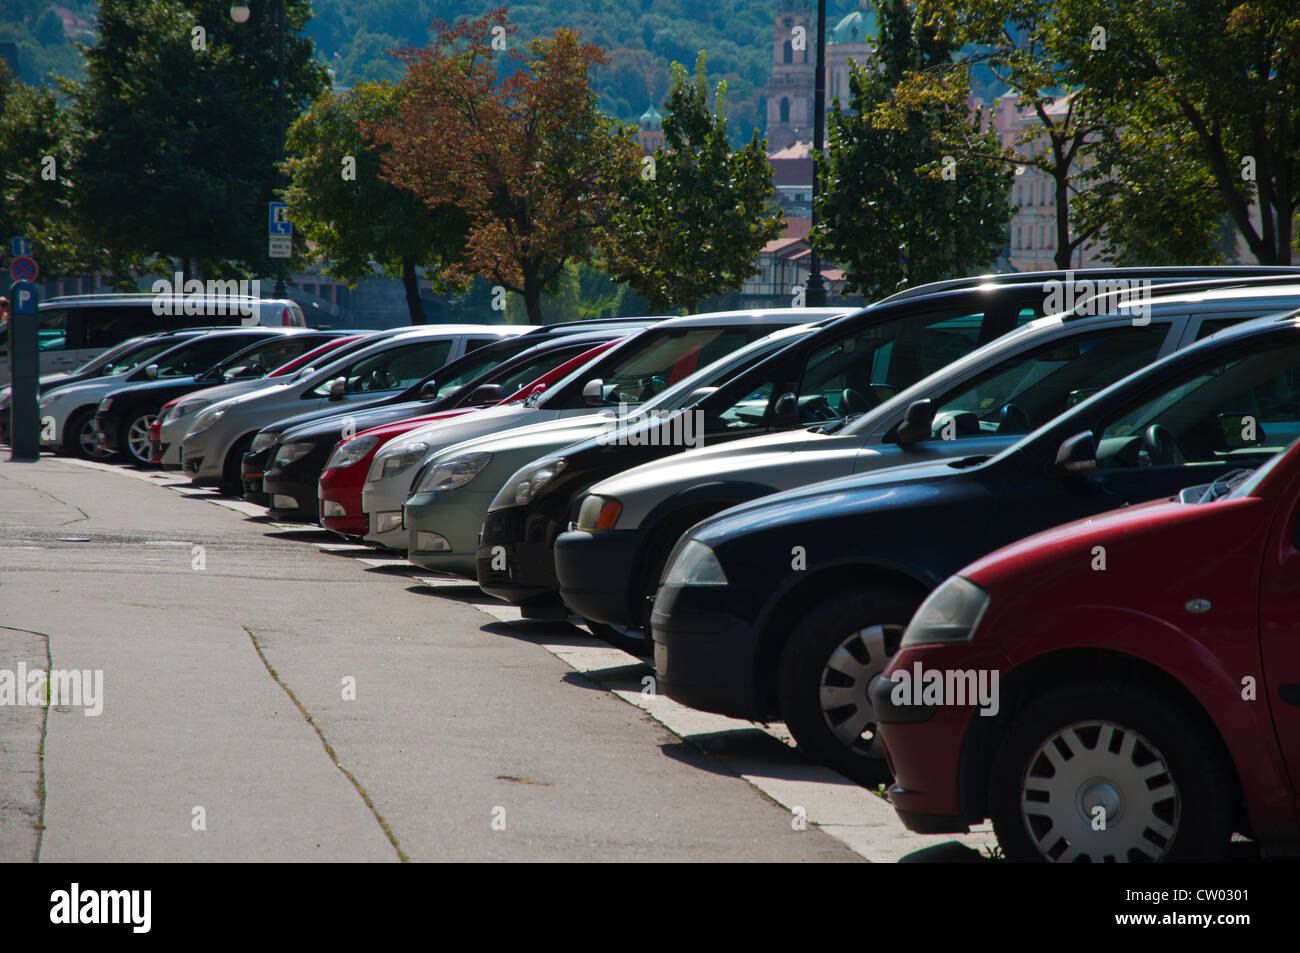 Parked cars Prague Czech Republic Europe - Stock Image